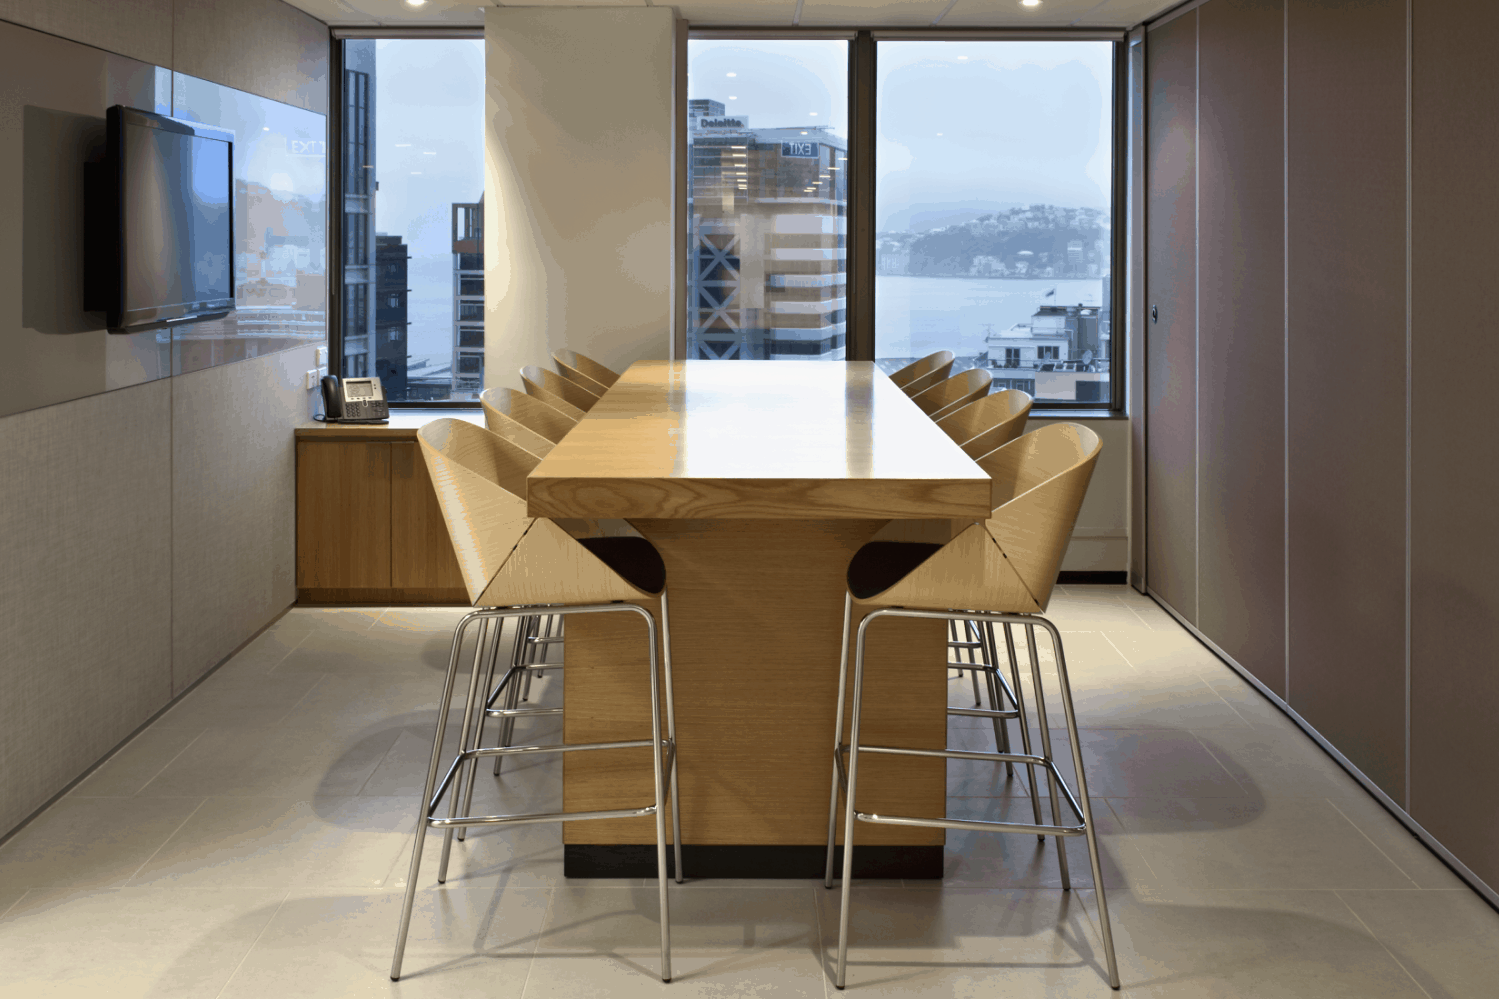 BNP Paribas in Wellington office workplace meeting room design including high table and chairs and TV